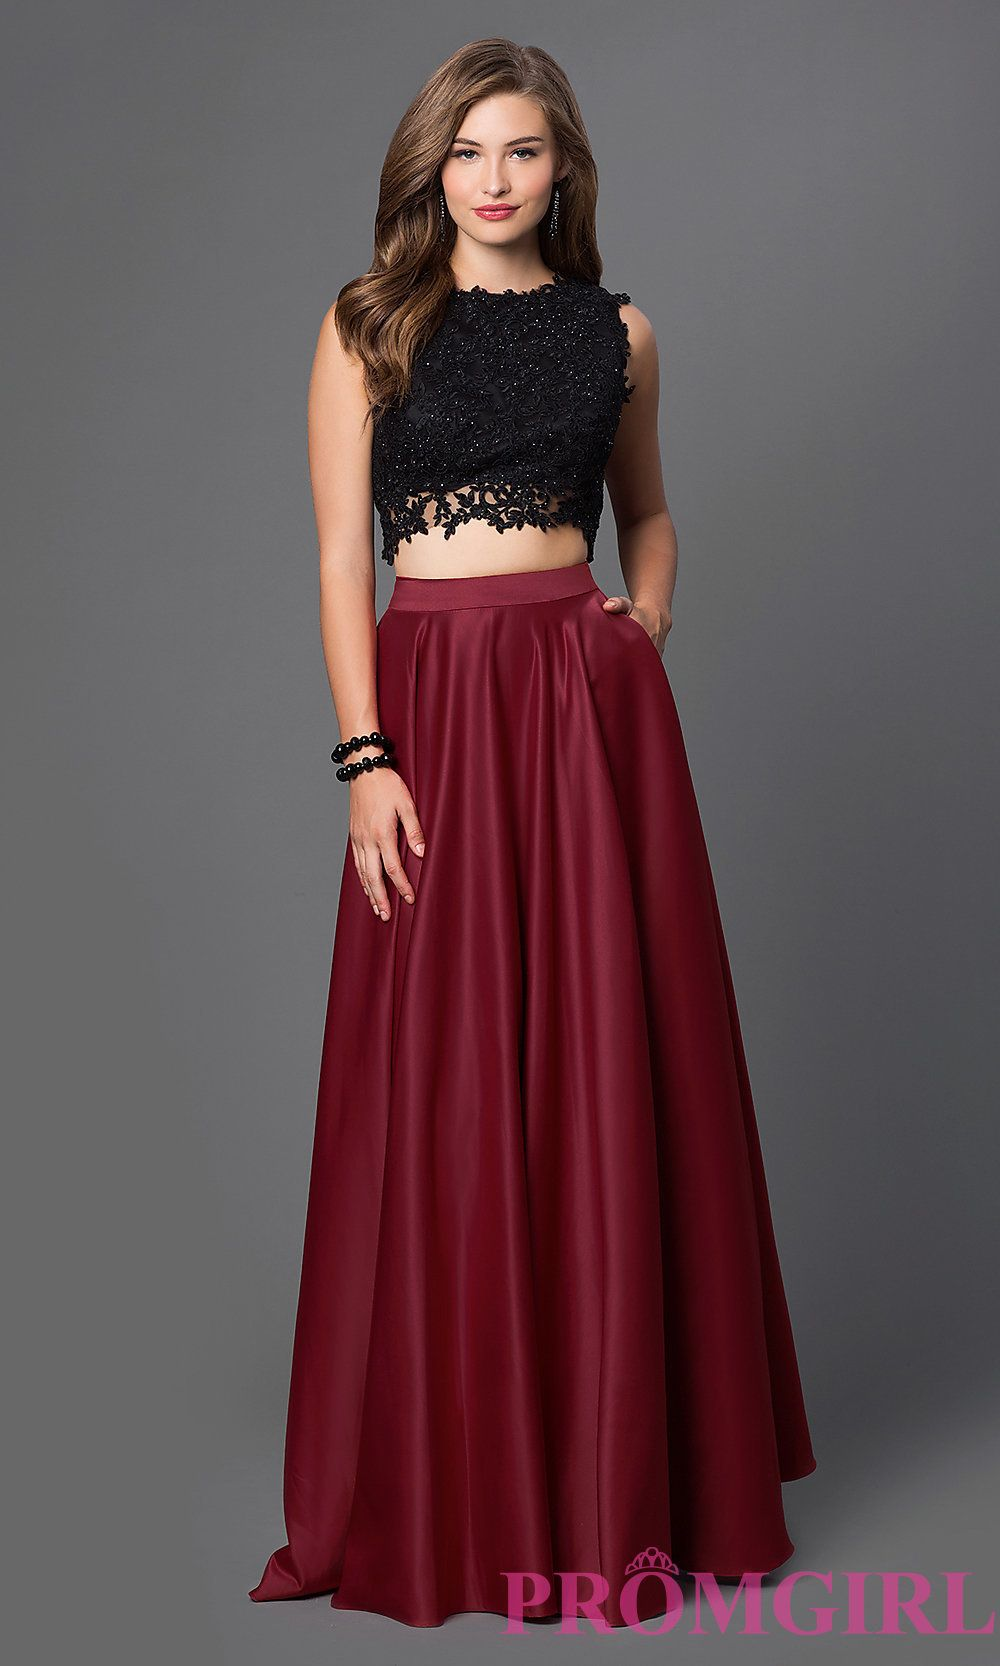 prom dresses celebrity dresses sexy evening gowns po 7450 clothes jewelry pinterest. Black Bedroom Furniture Sets. Home Design Ideas